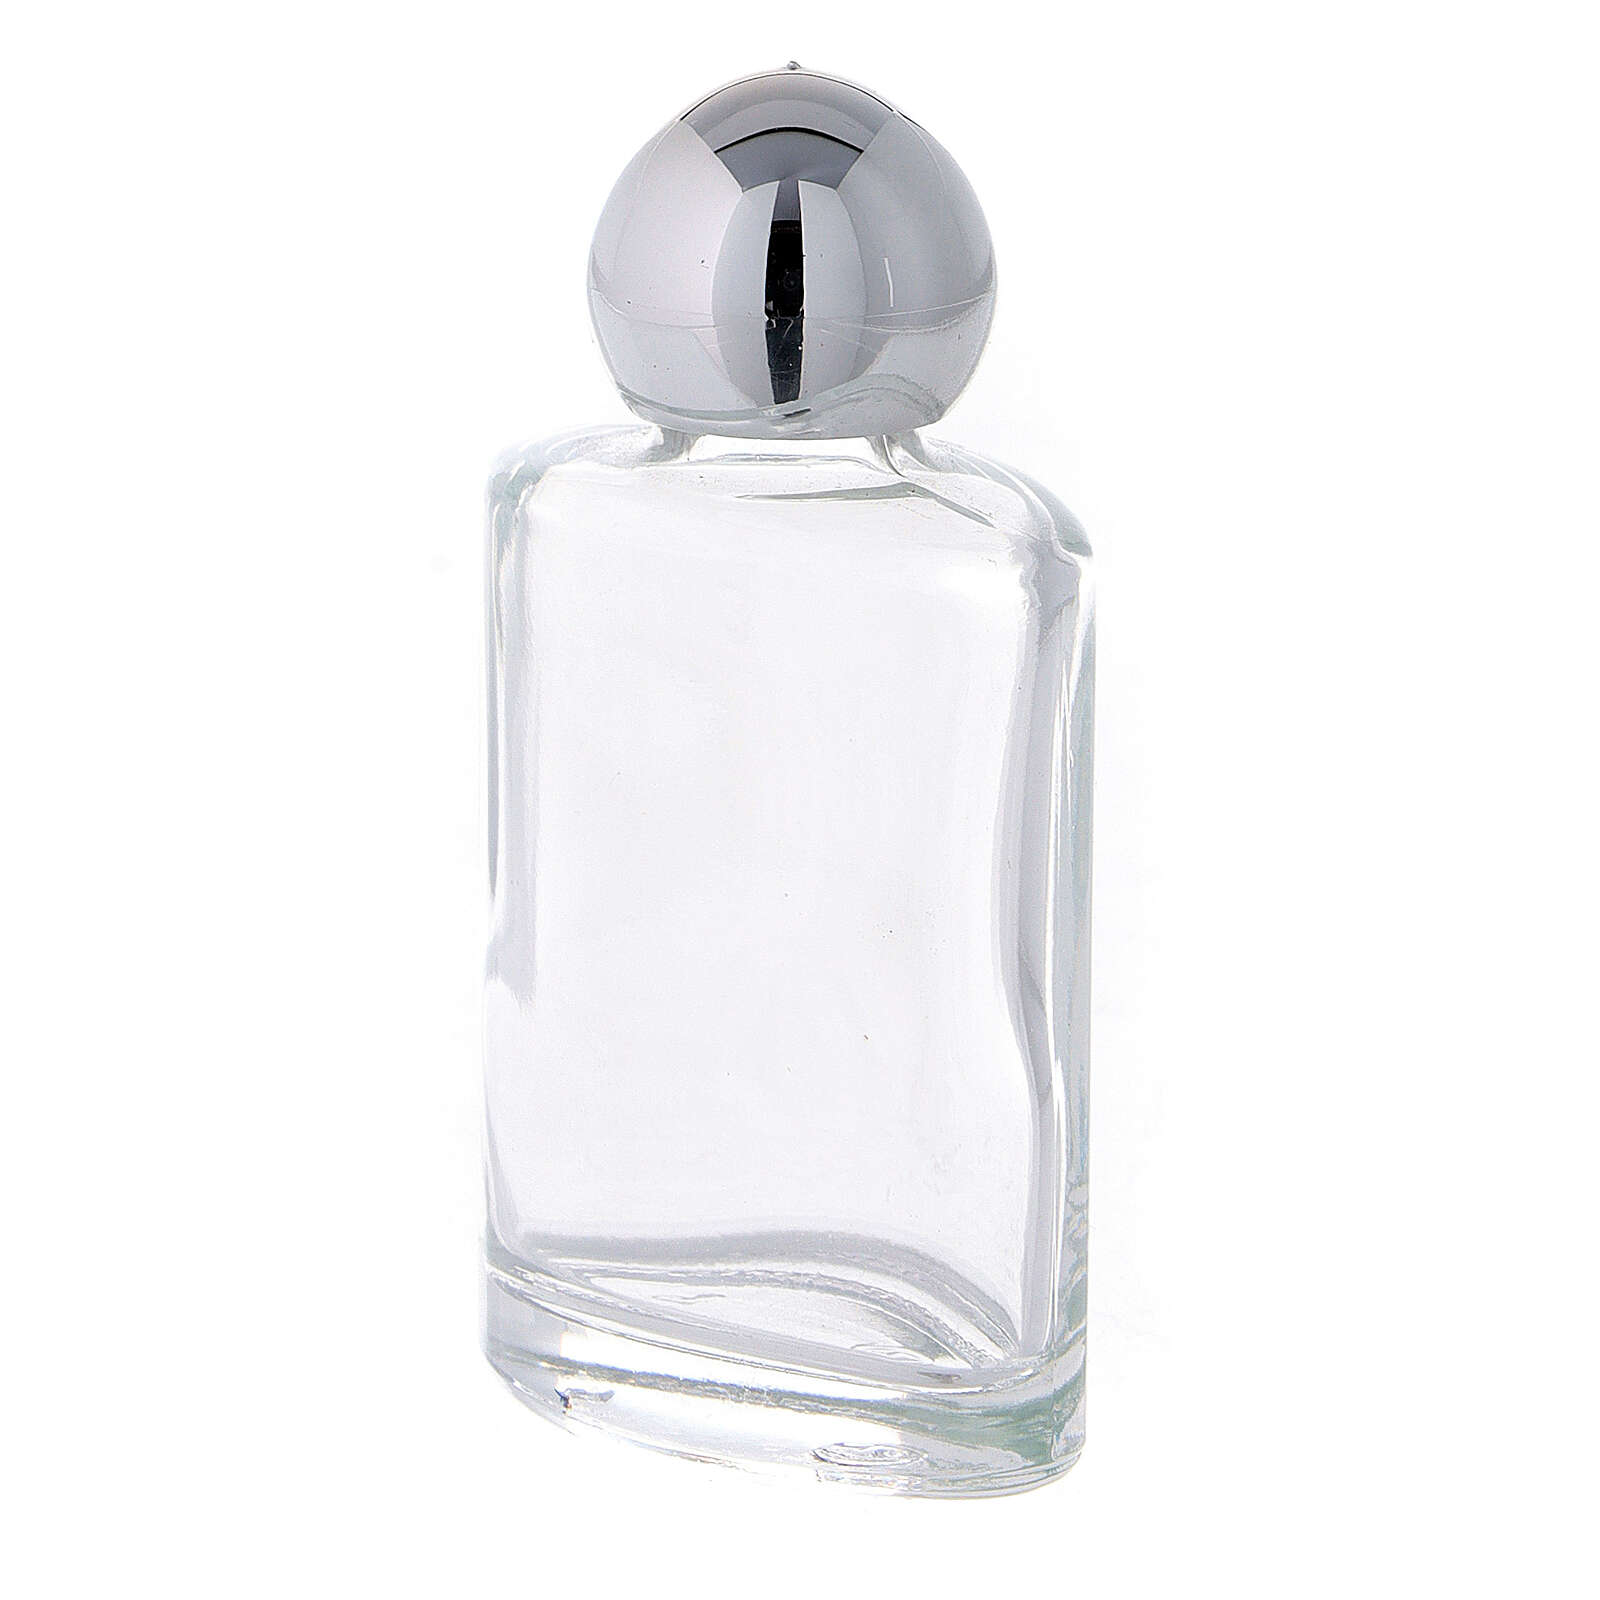 15 ml holy water bottle in glass (50 pcs pk) 3